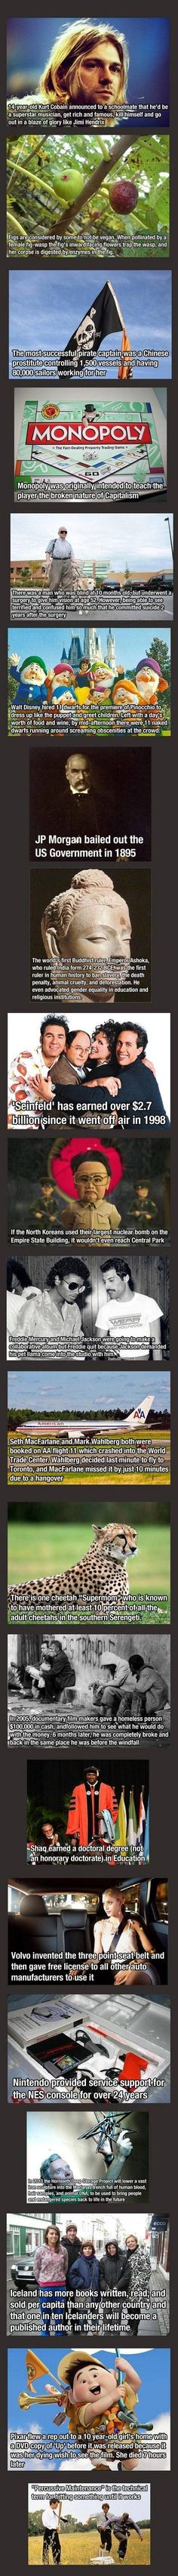 21 Interesting General Knowledge Facts